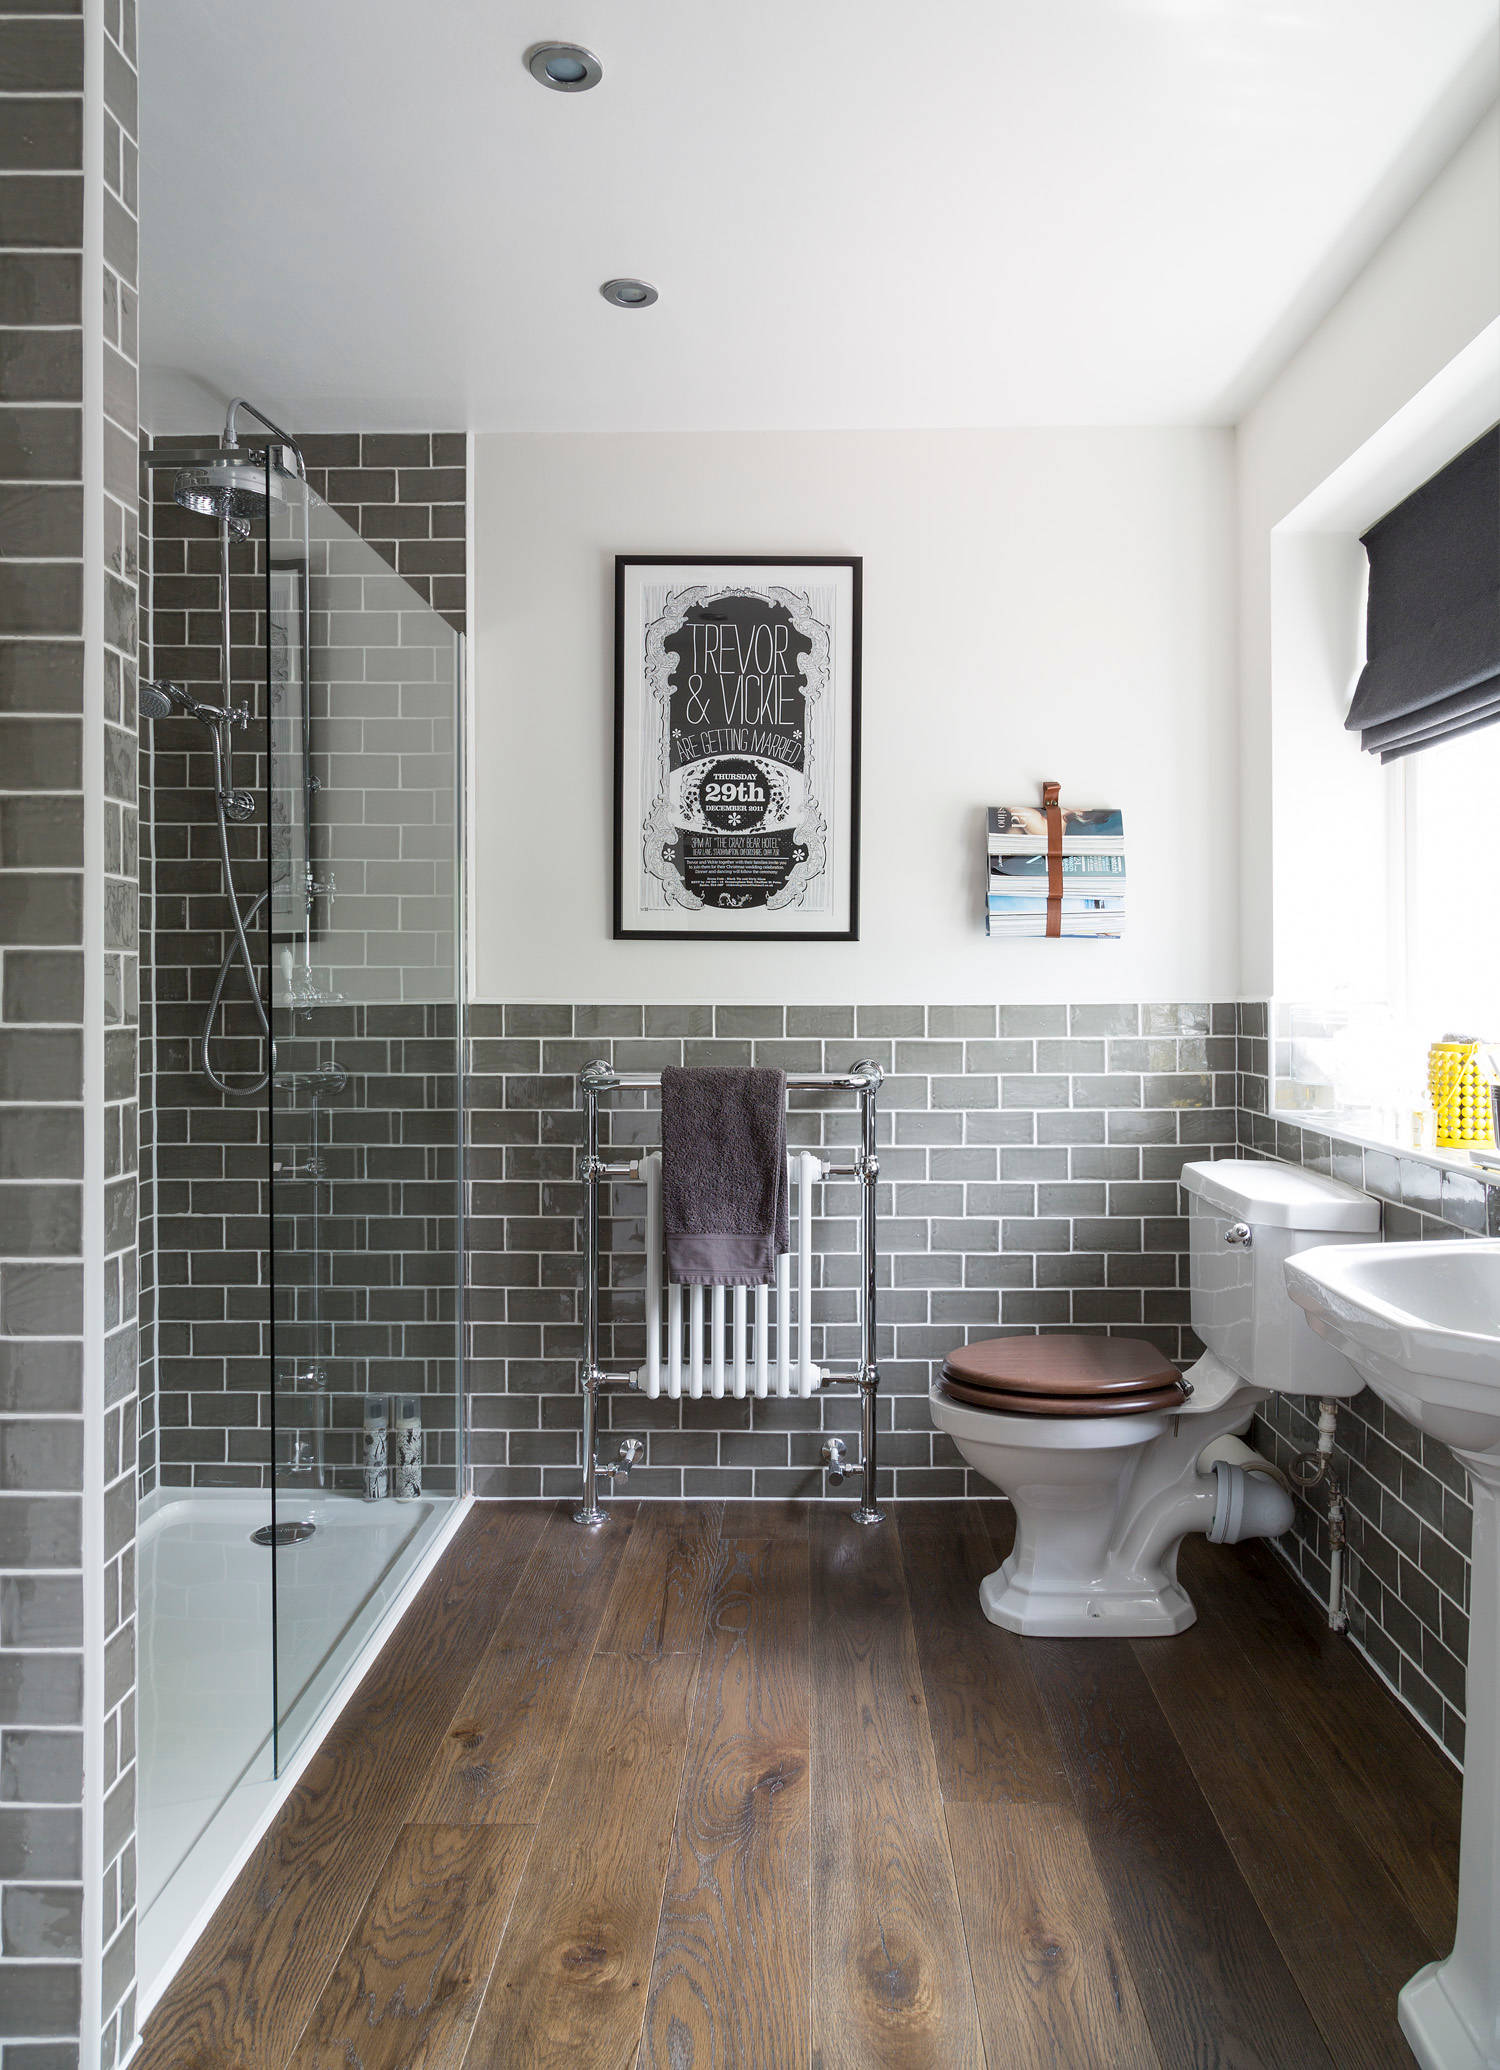 75 Beautiful Dark Wood Floor Bathroom Pictures Ideas November 2020 Houzz